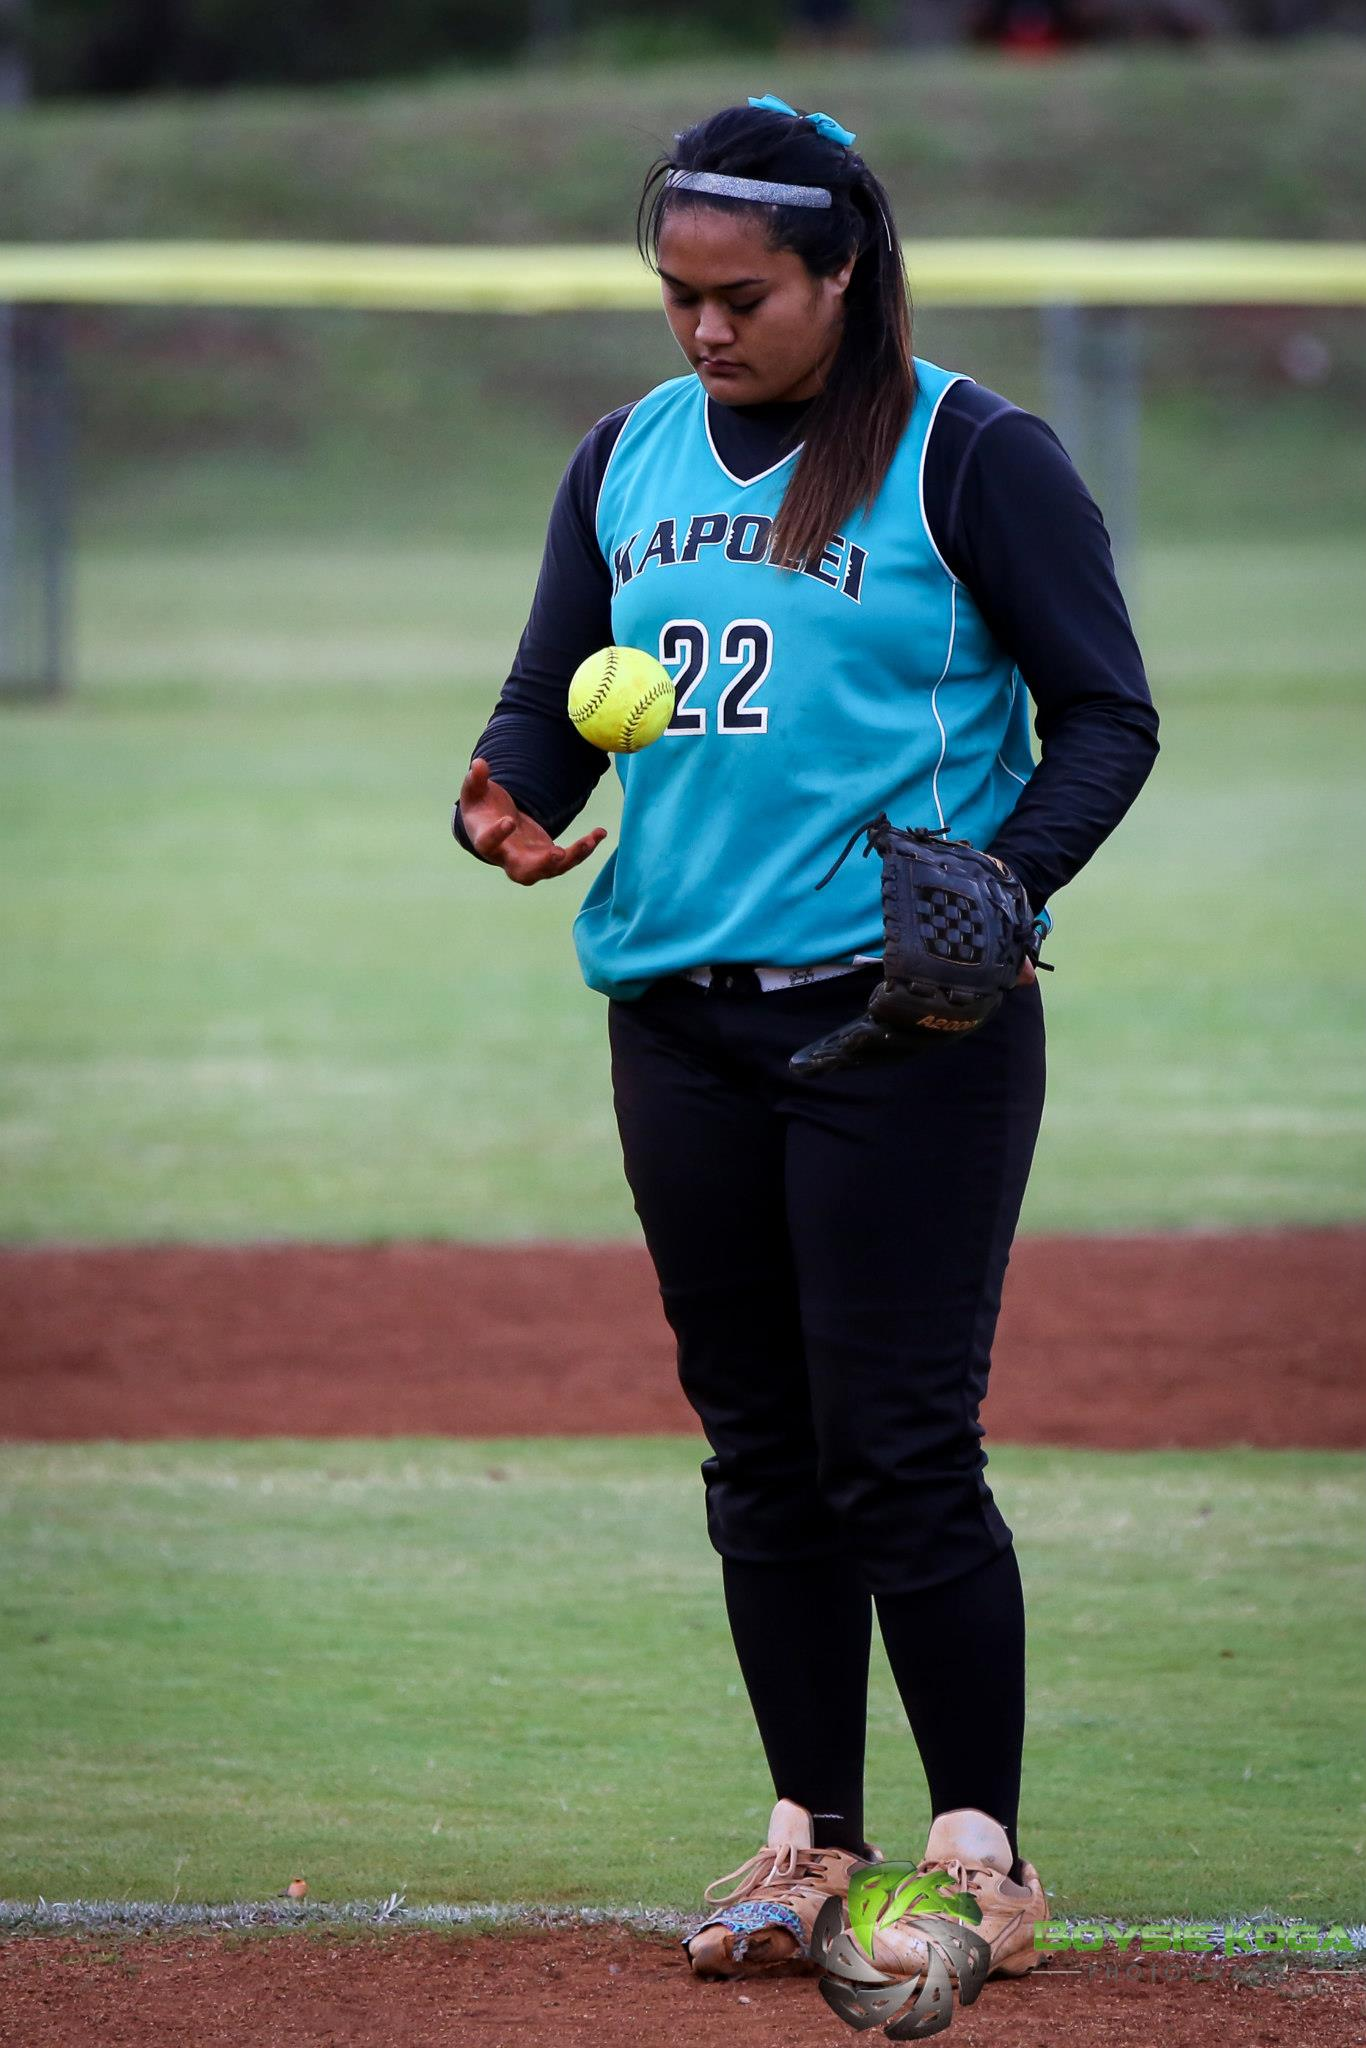 softball coaching tips: dealing with mistakes